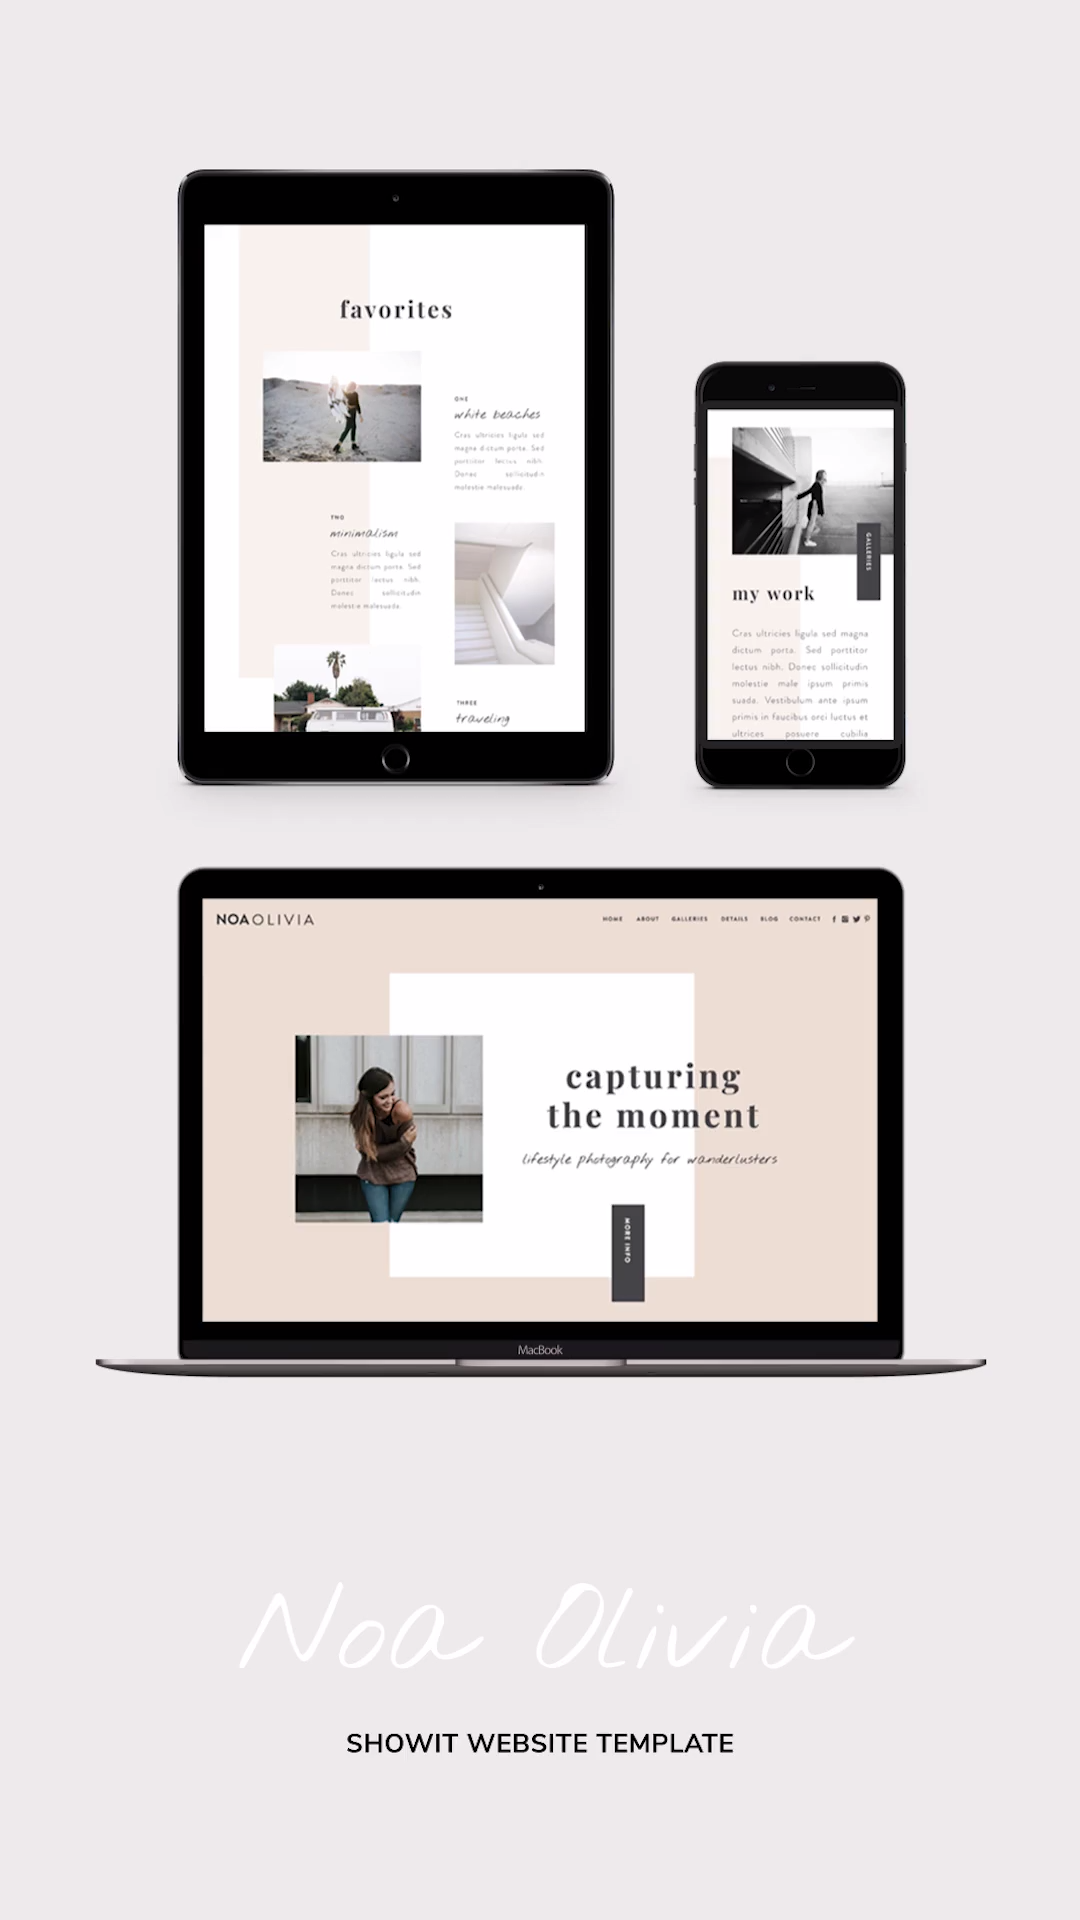 Minimalist Showit theme for the modern creative professional. A website template with a fresh minimal look. Noa Olivia is unique in it's simplicity and small details. Launch this editorial looking website today and share your story in a stunning and attractive way! #showit #website #template #design #inspiration #layout #business #creative #professional #minimalist #branding #modern #webdesign #love #ideas #best #clean #feminine #portfolio #top #simple #responsive #magazine #site #editoral #cool